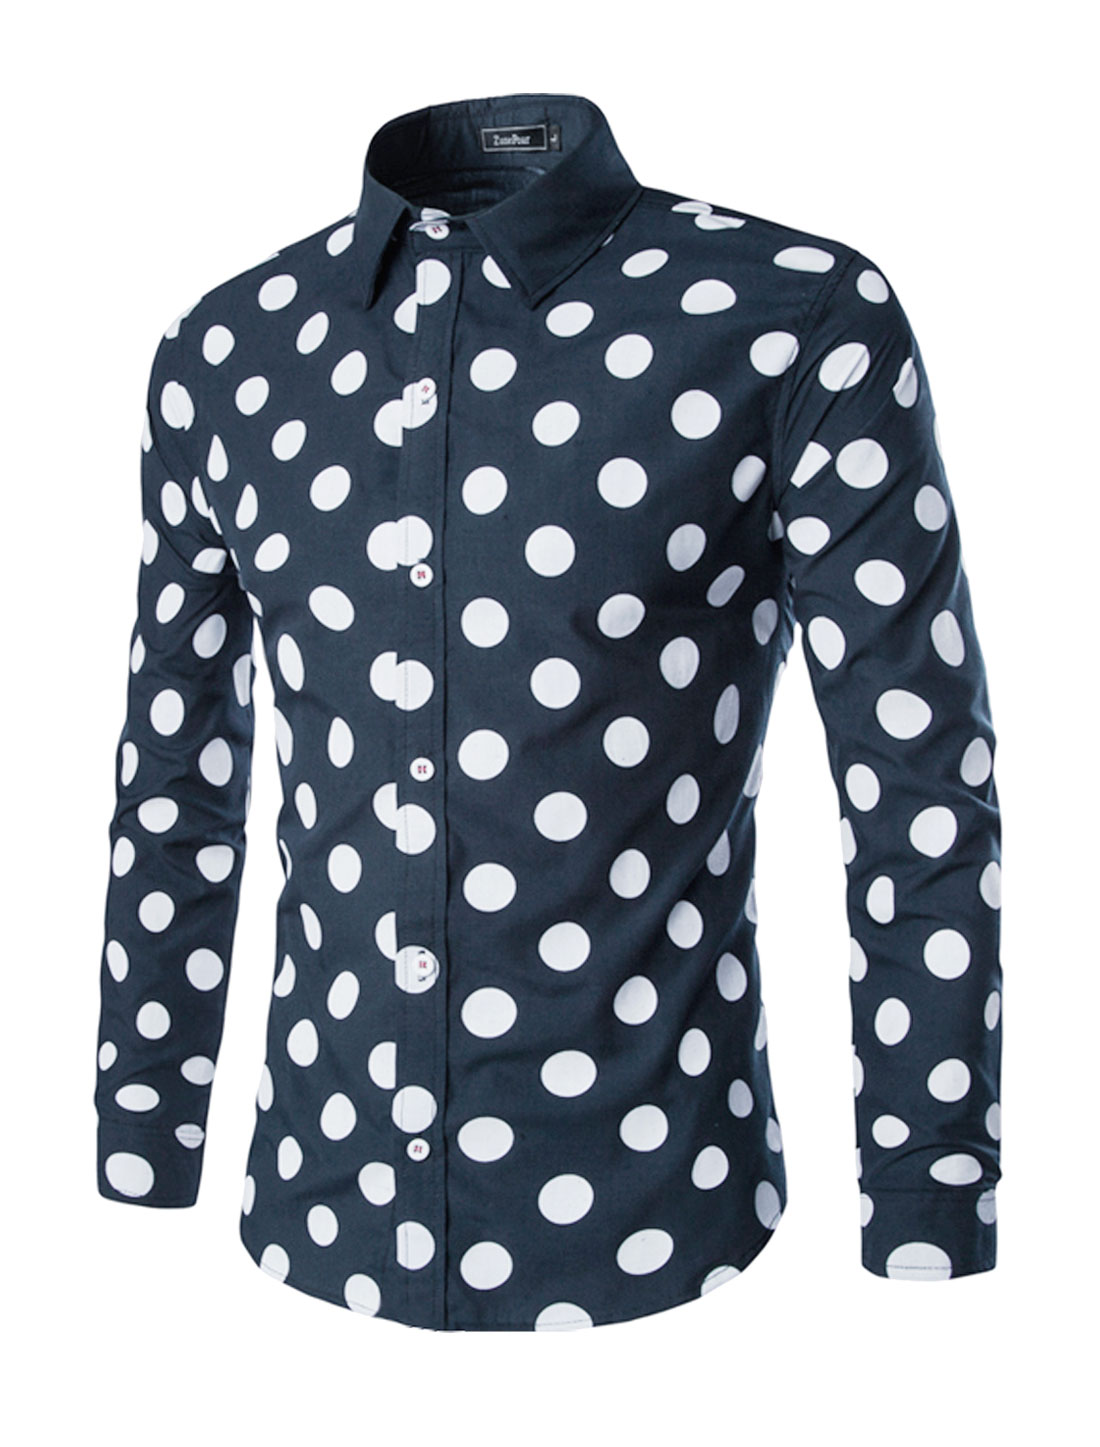 Men Collared Single Breasted Dots Slim Fit Shirt Navy Blue M